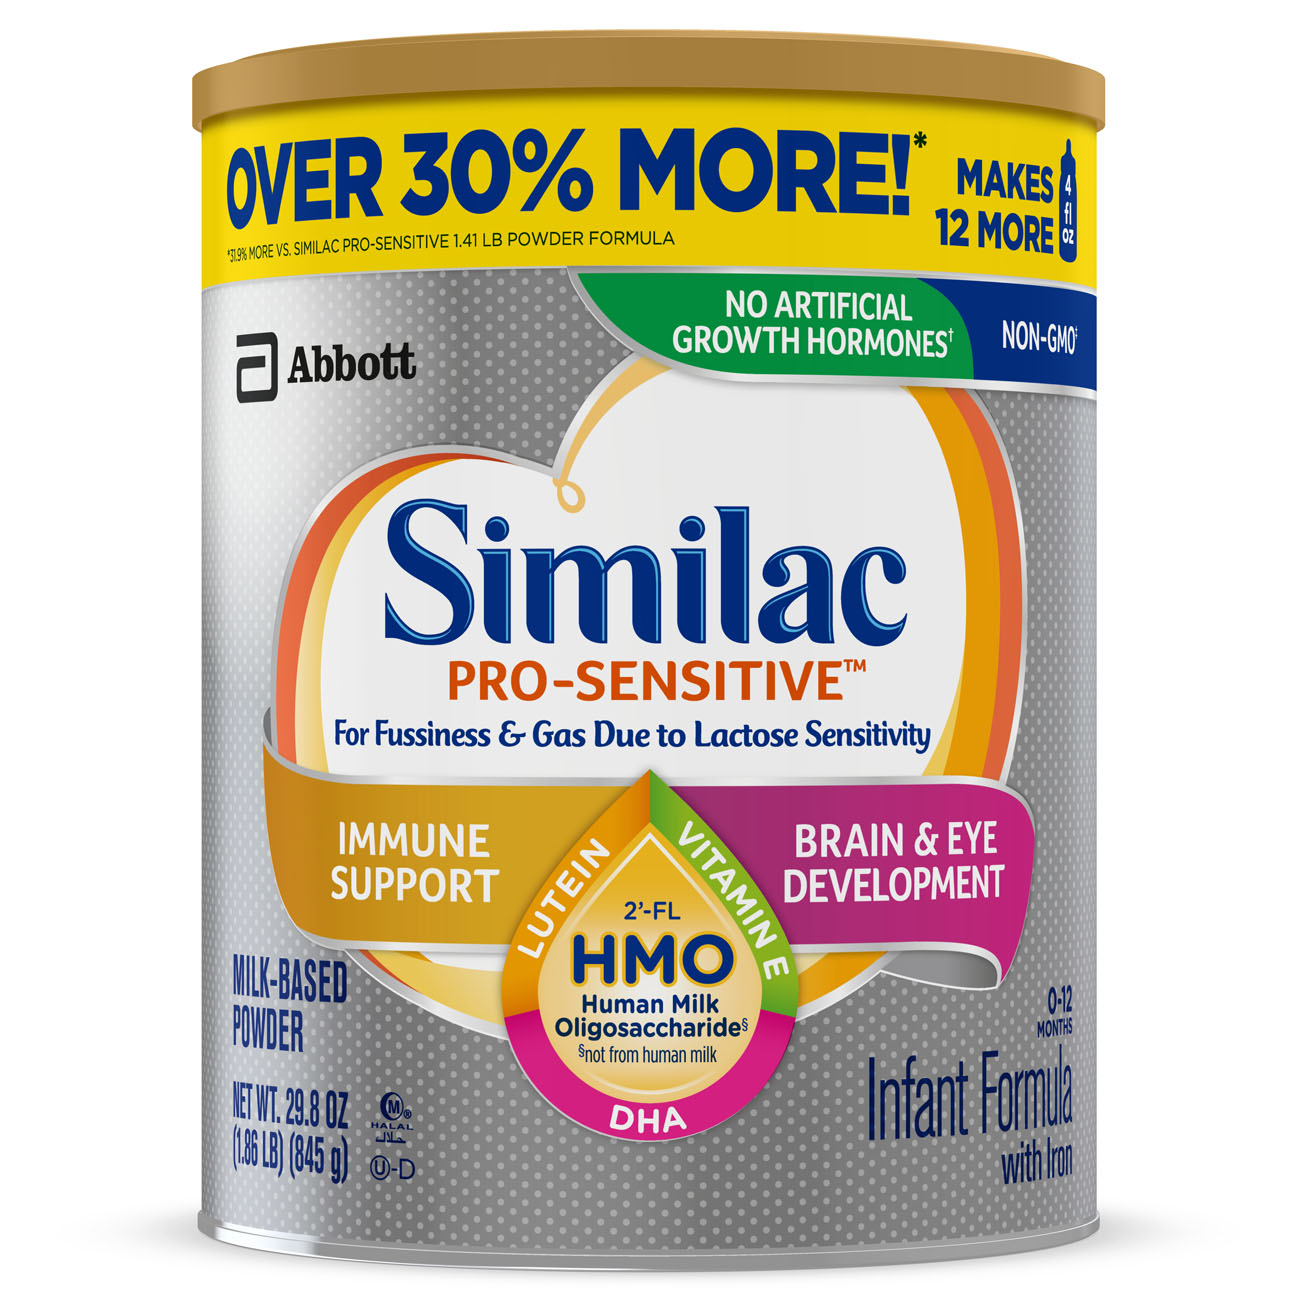 Similac Pro-Sensitive Non-GMO with 2'-FL HMO Infant Formula with Iron for Immune Support, Baby Formula 29.8 oz Can